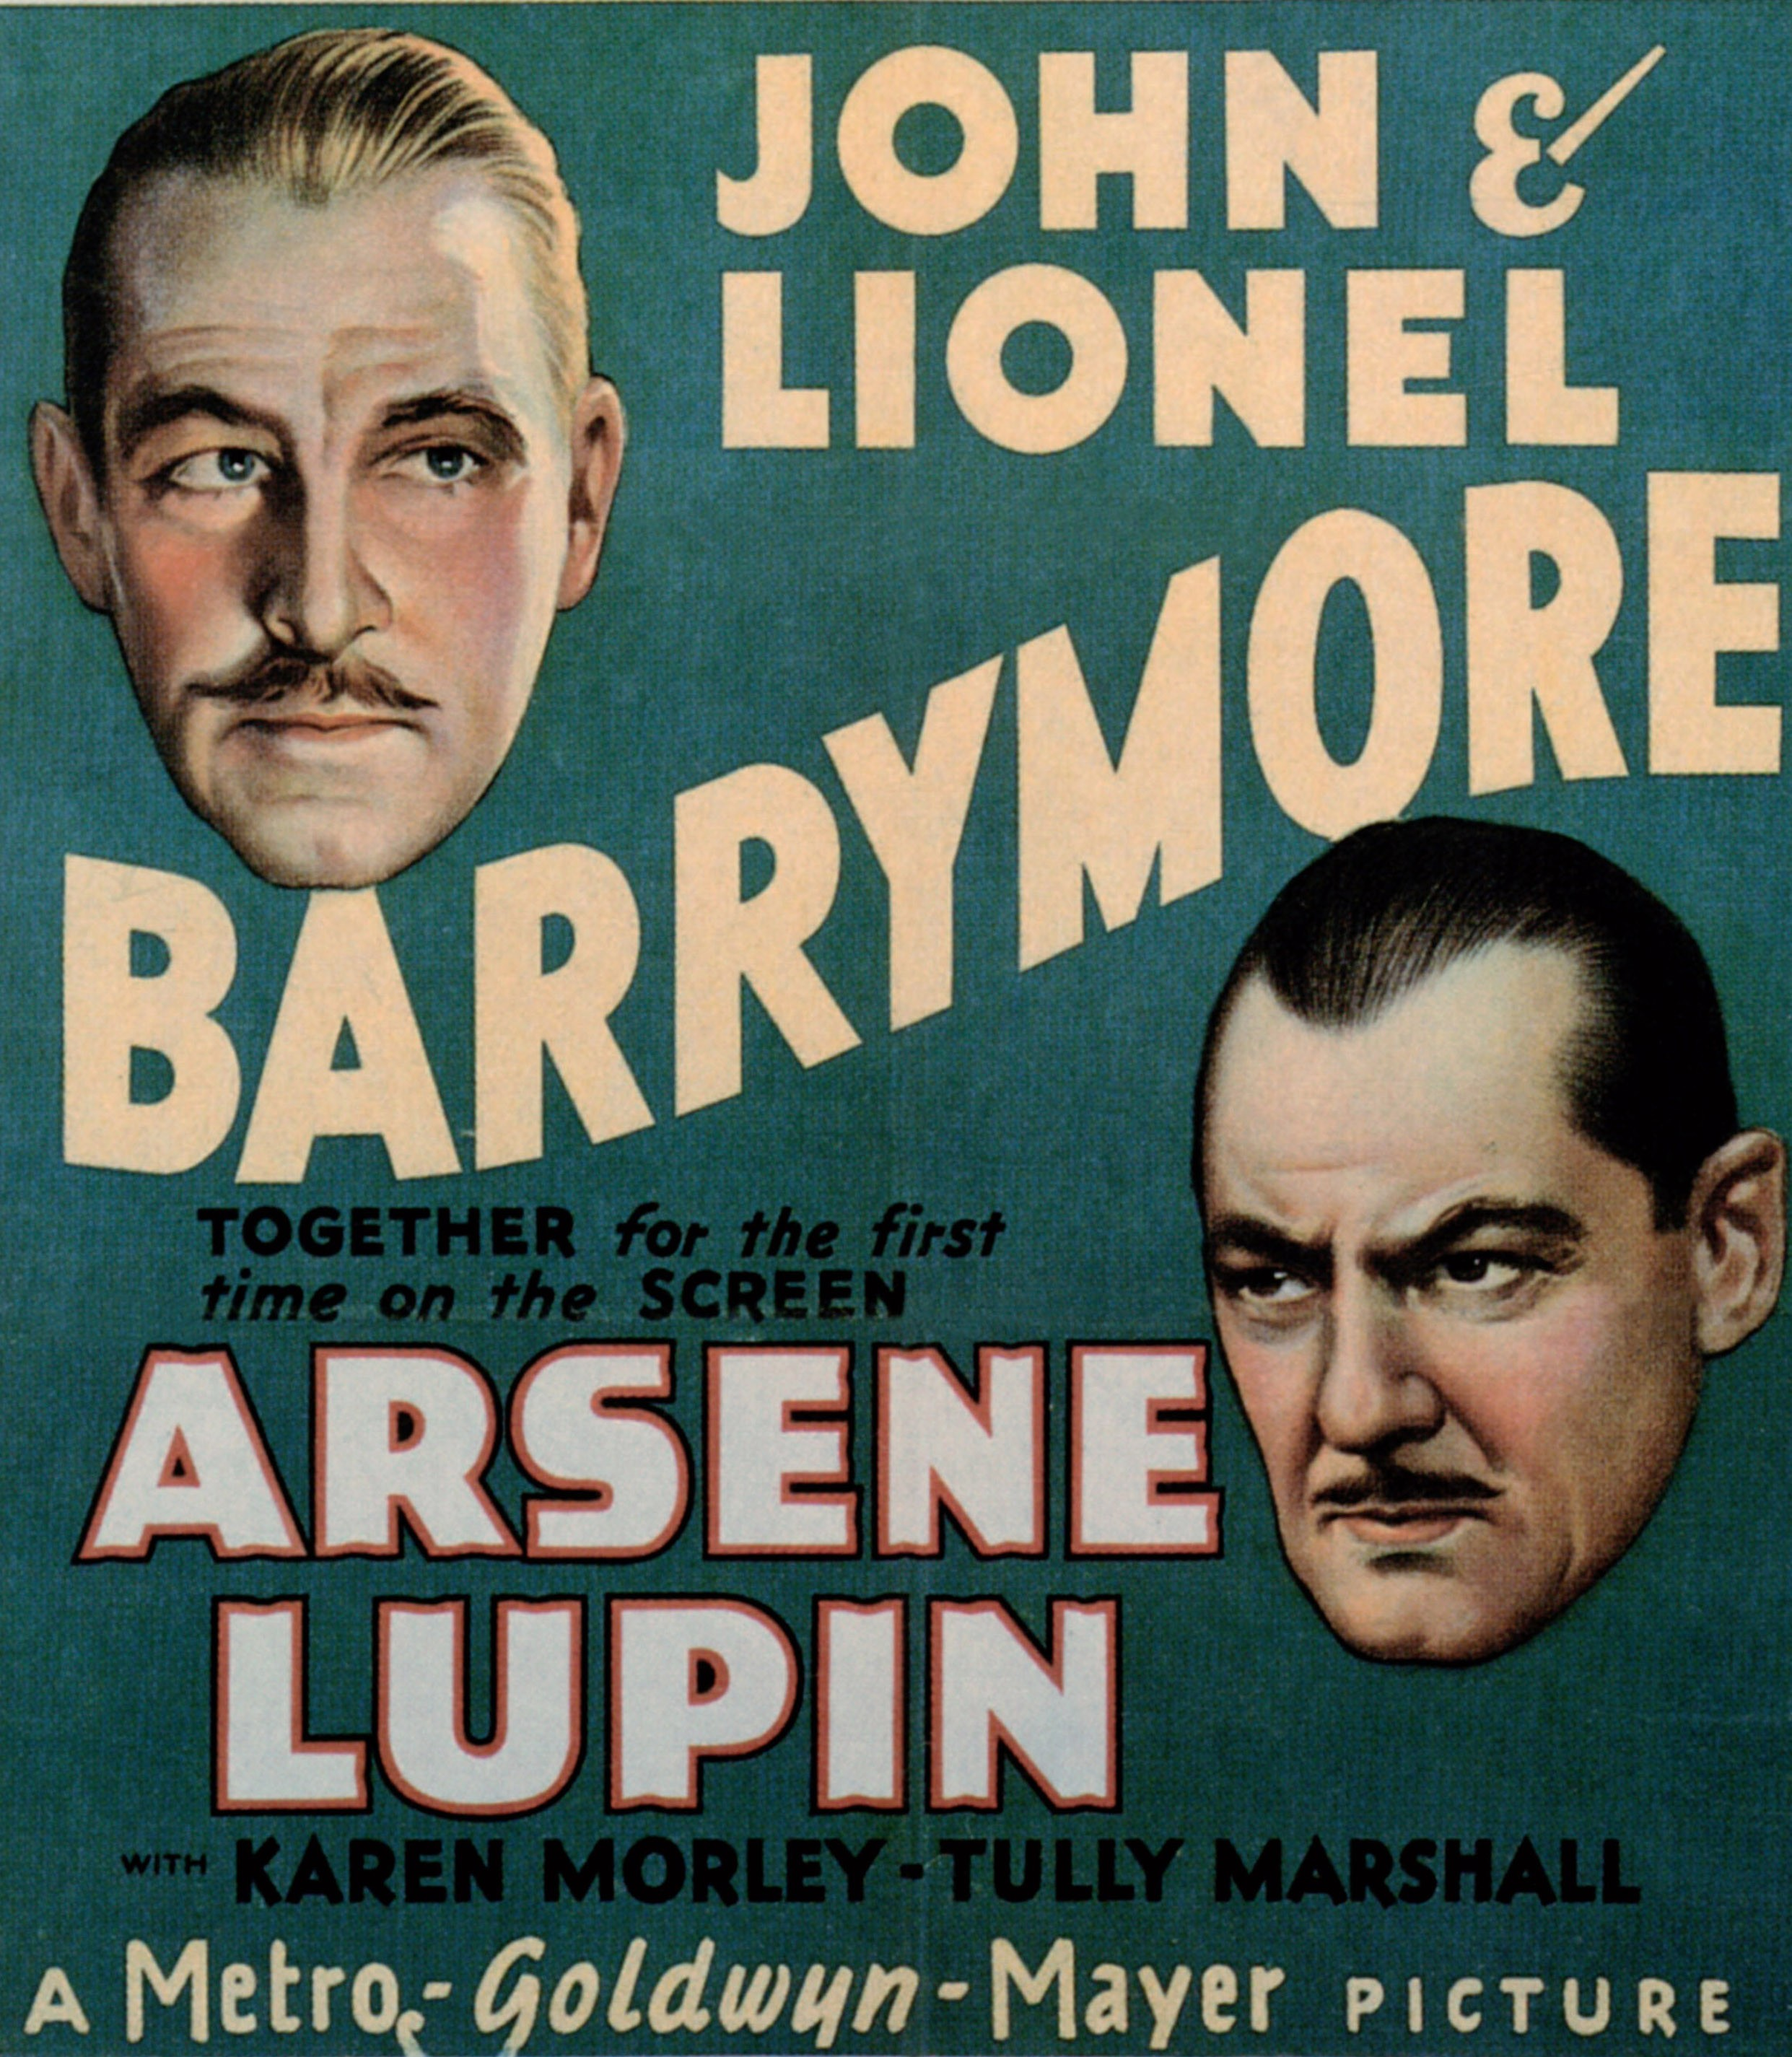 Poster for a 1932 Lupin film adaptation starring John and Lionel Barrymore